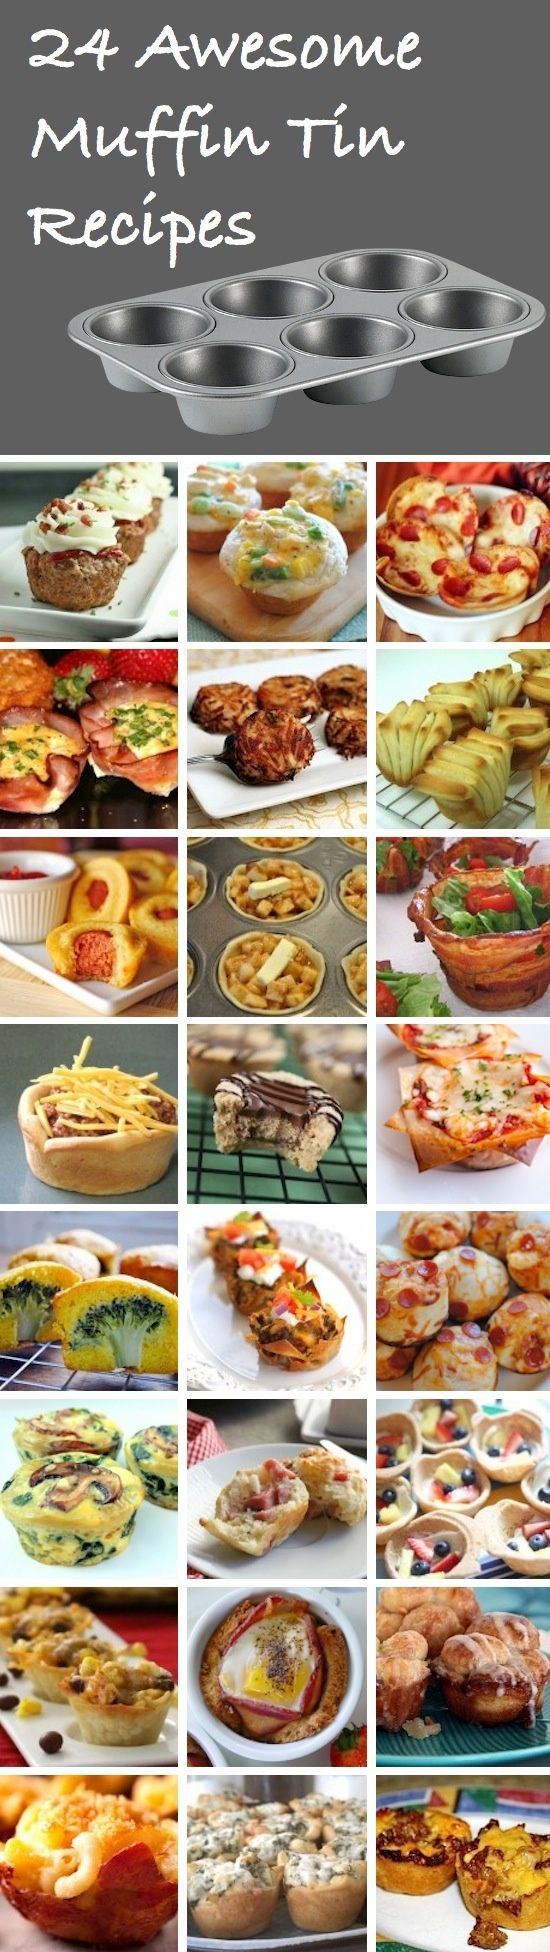 24 Awesome Muffin Tin Recipes.